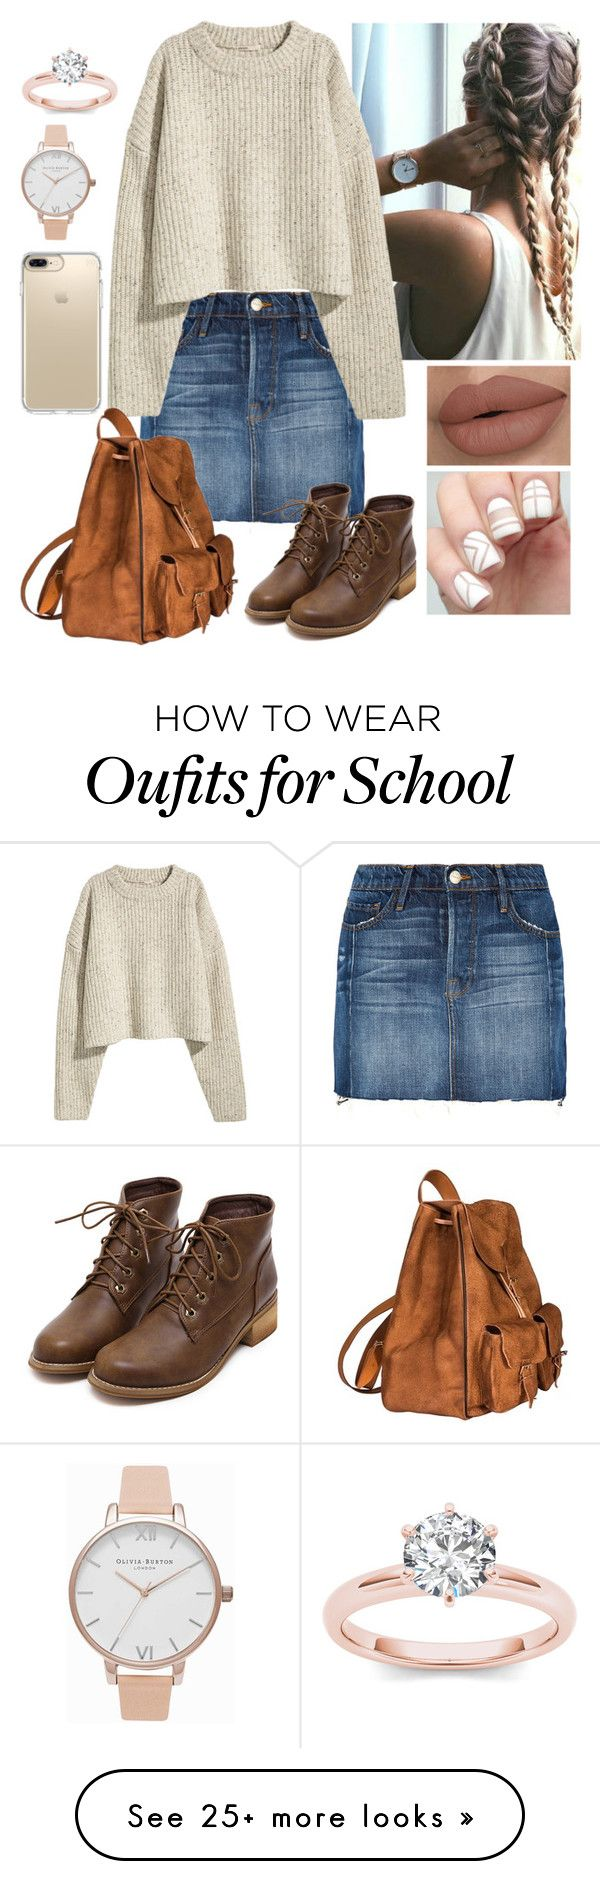 """""""school outfit 4"""" by mollieswale on Polyvore featuring Frame, Yves Saint Laurent, Speck and Olivia Burton"""